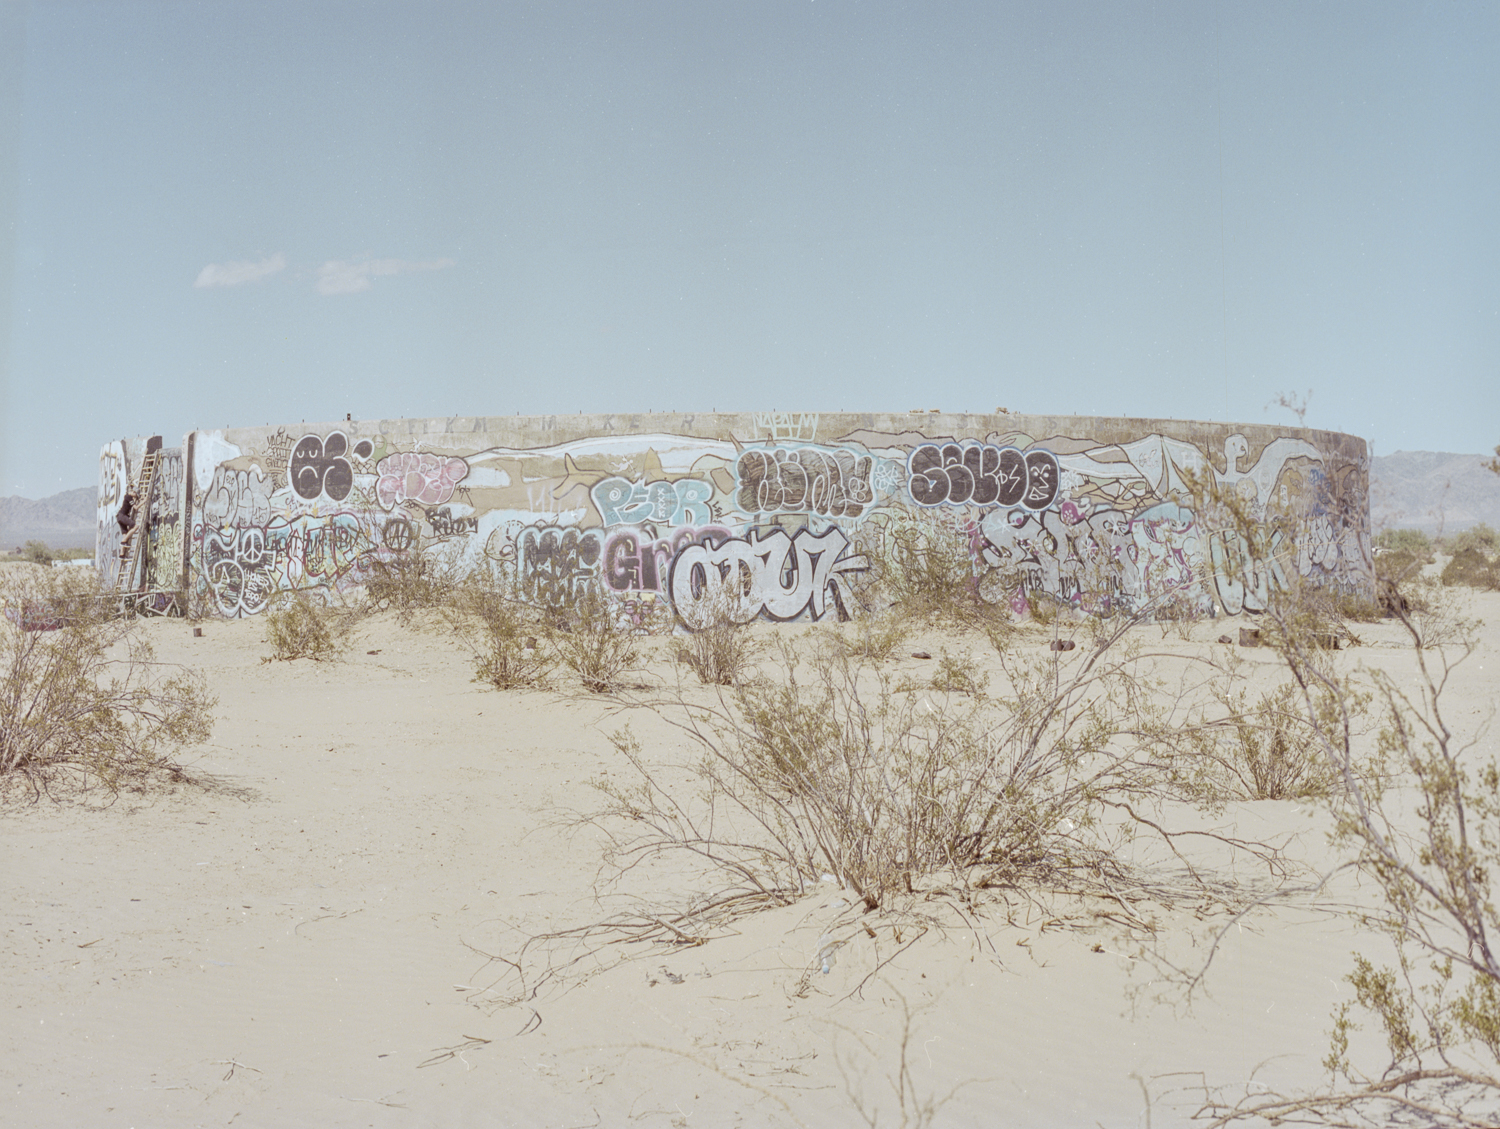 28 Aug 2016, Concrete Cylinder Structures with Grafitti, Slab City, NIland, CA. Pentax 645, Ektar 100 @ 400, Developed (Unicolor) and Scanned by me.